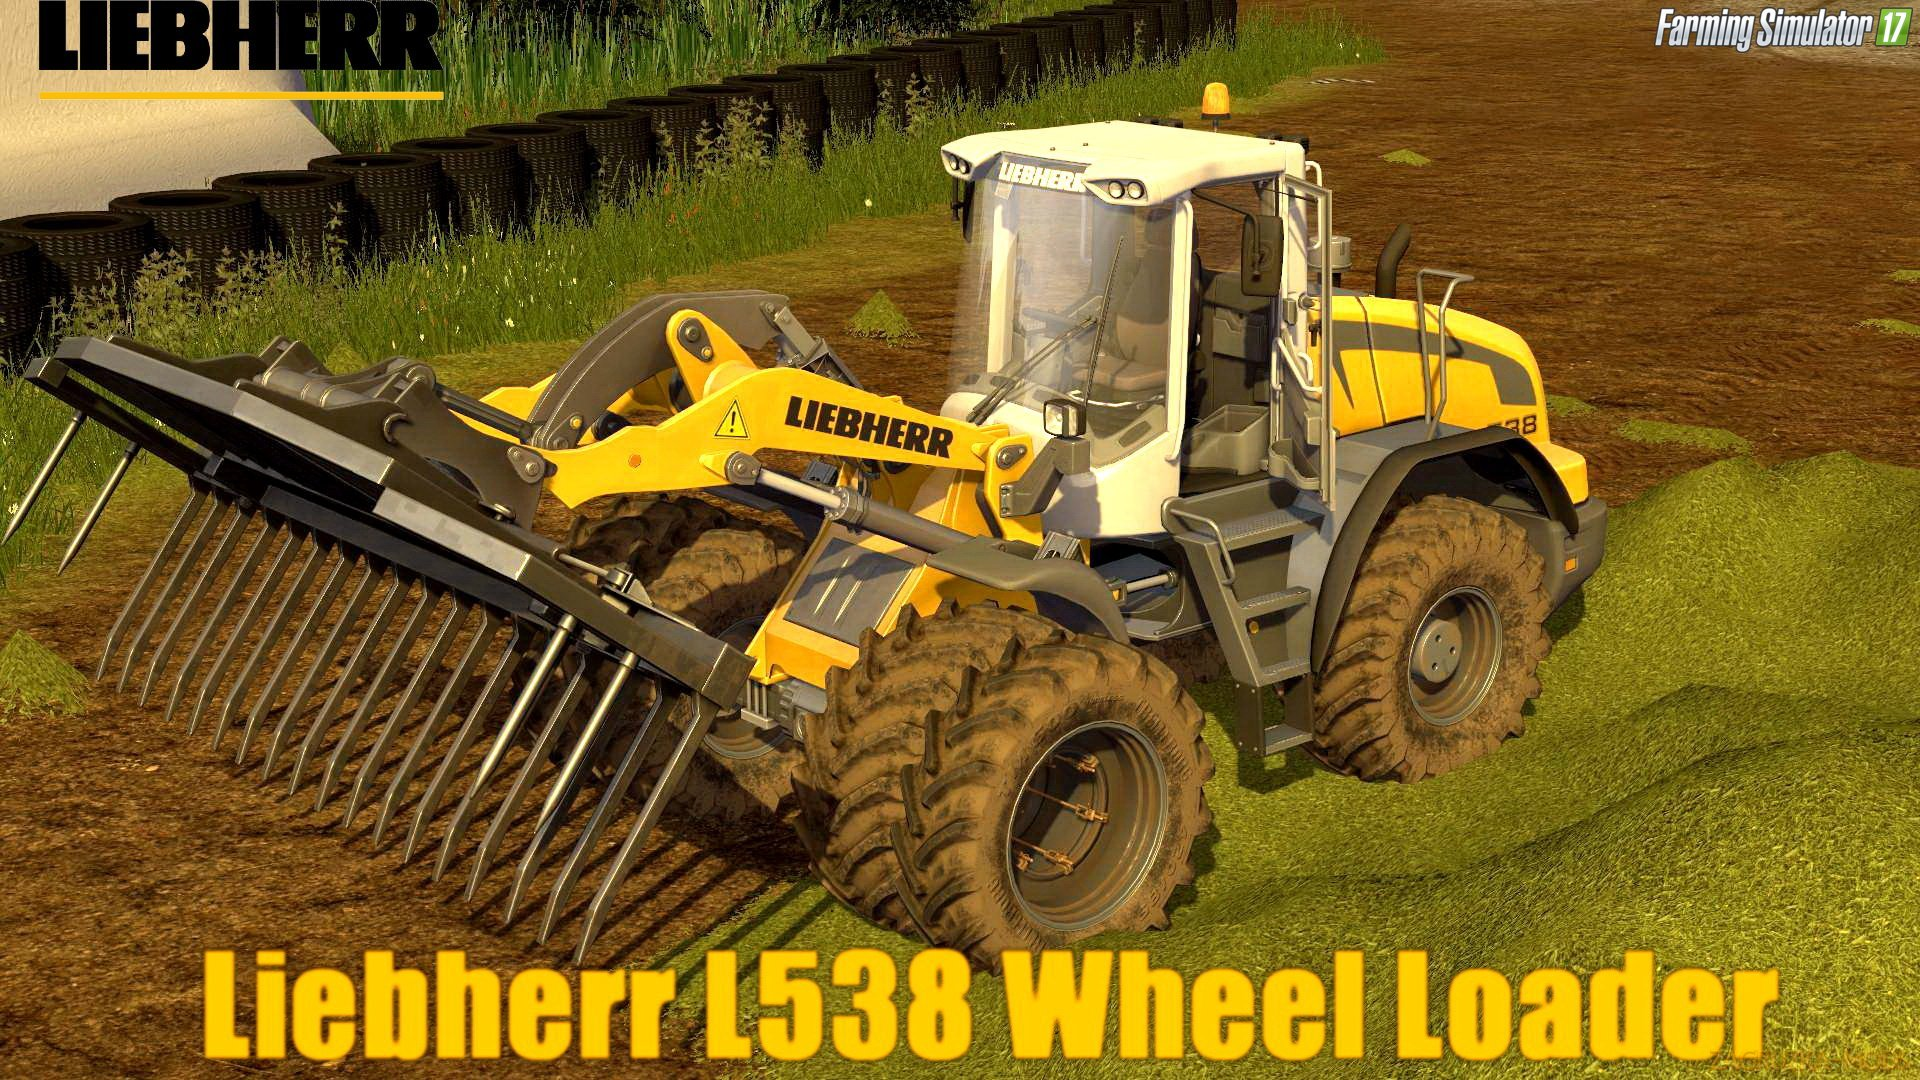 Liebherr L538 Wheel Loader v1.0 for FS 17